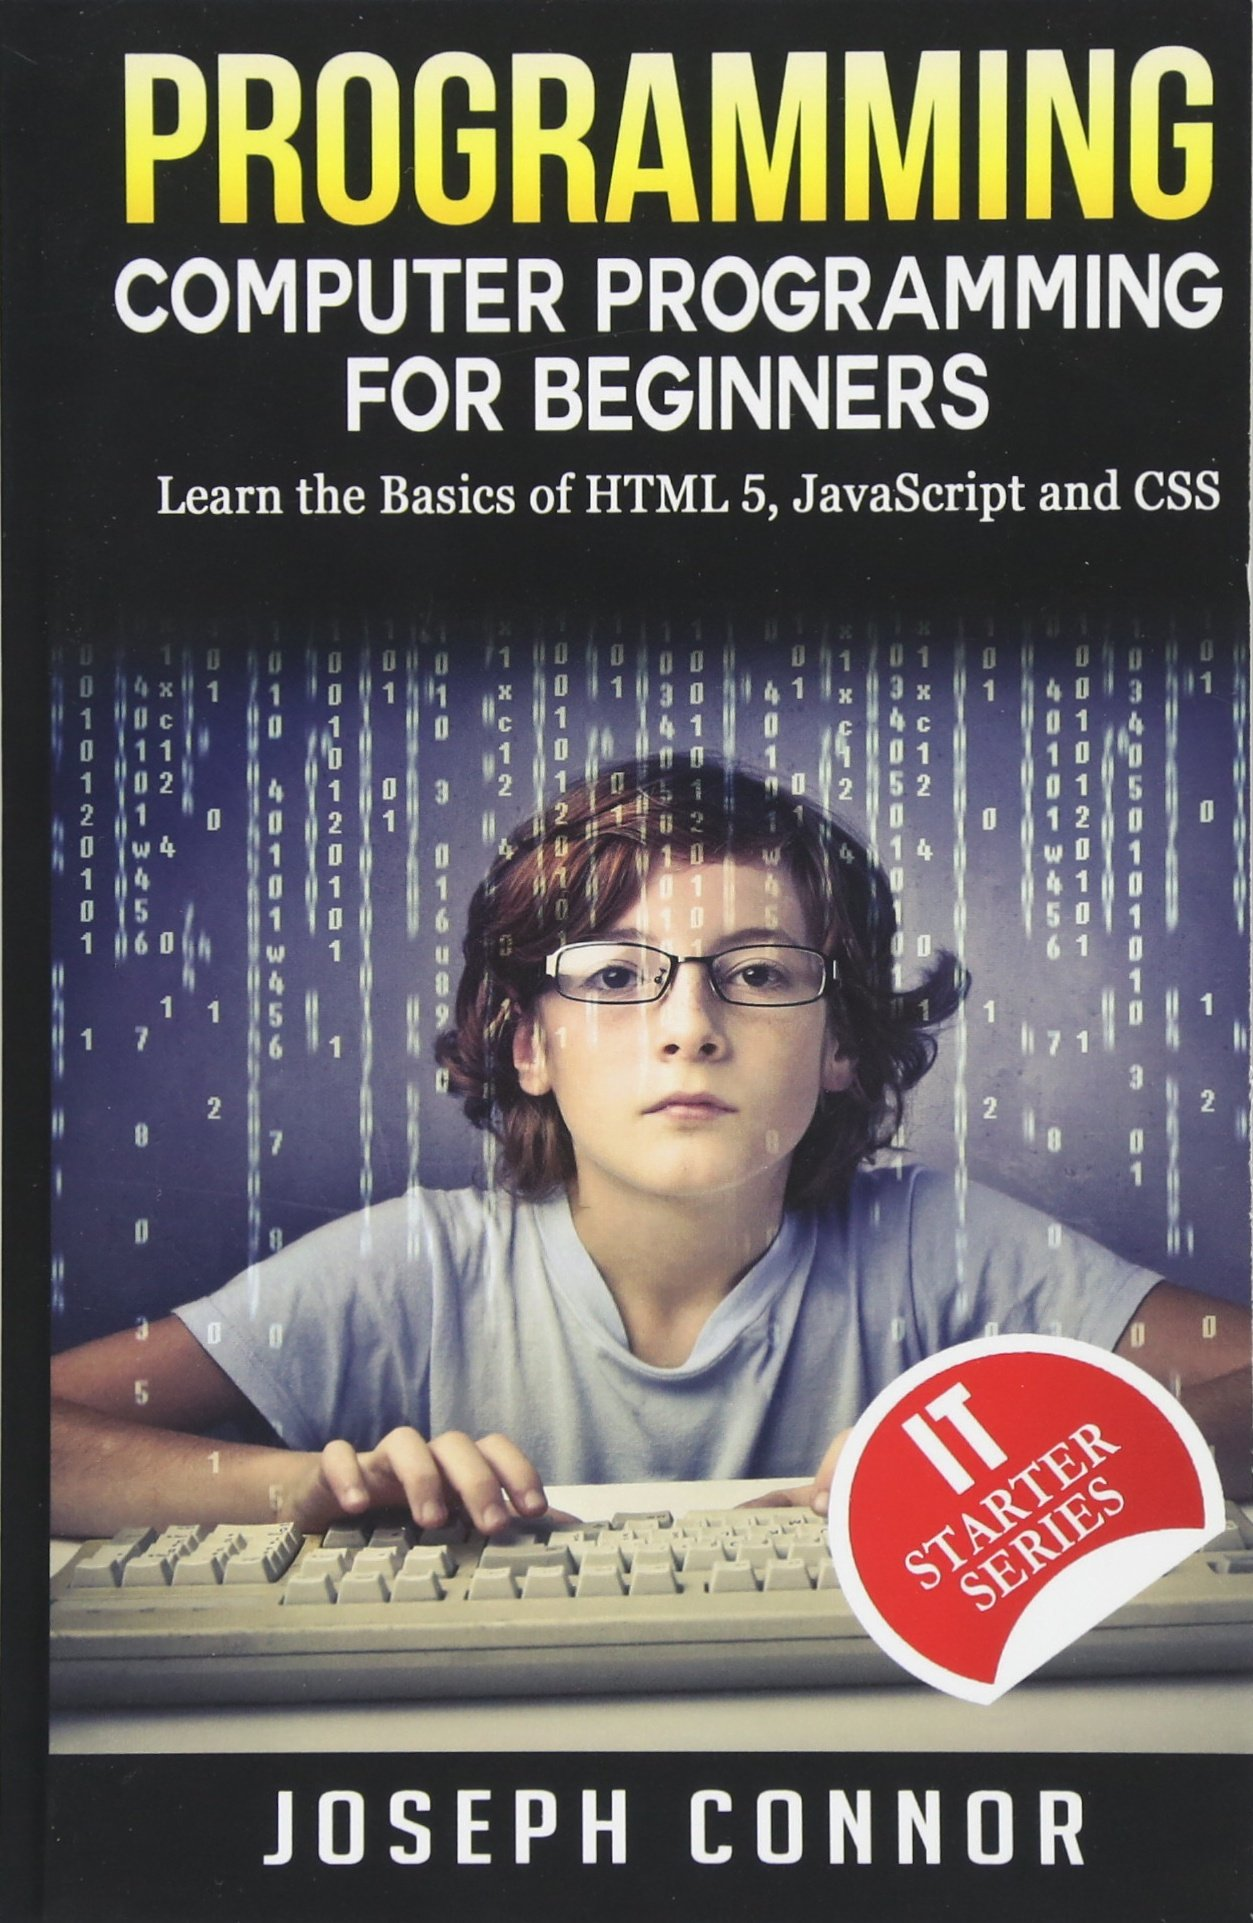 Programming Computer Beginners Basics JavaScript product image